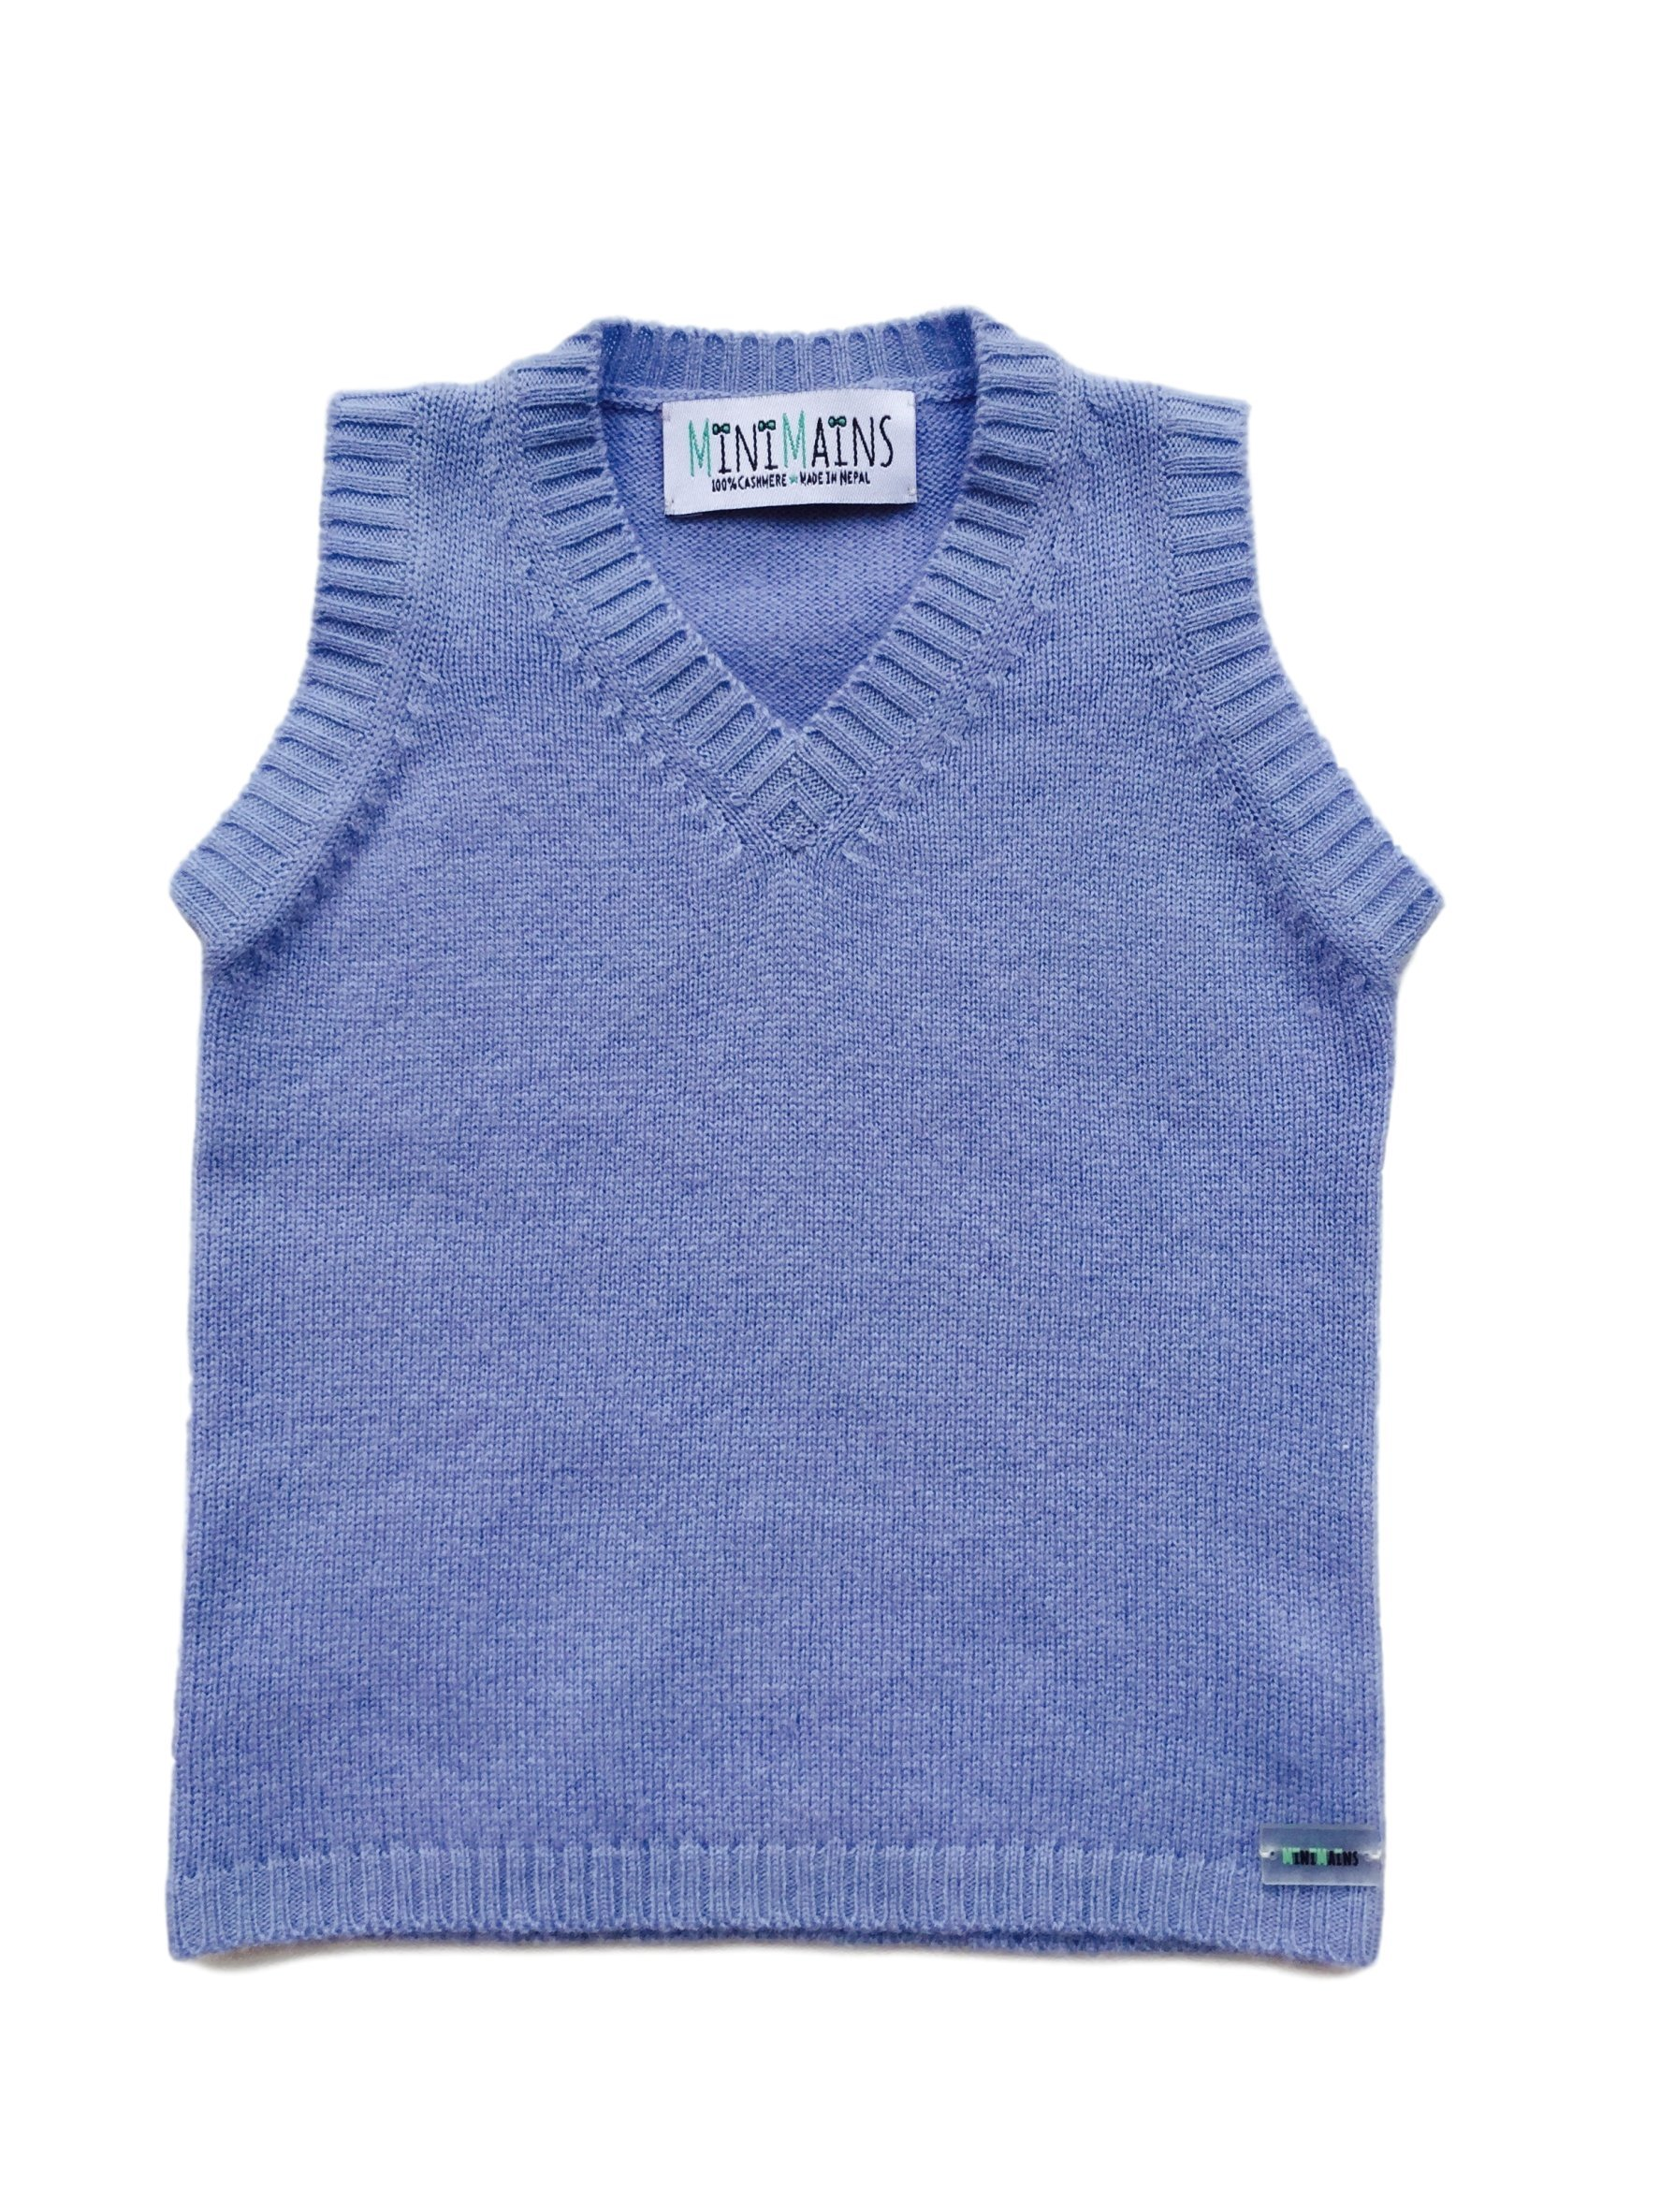 Minimains Baby Boys' Pure Cashmere Sleeveless Vest 6-9 Months Blue by MINIMAINS